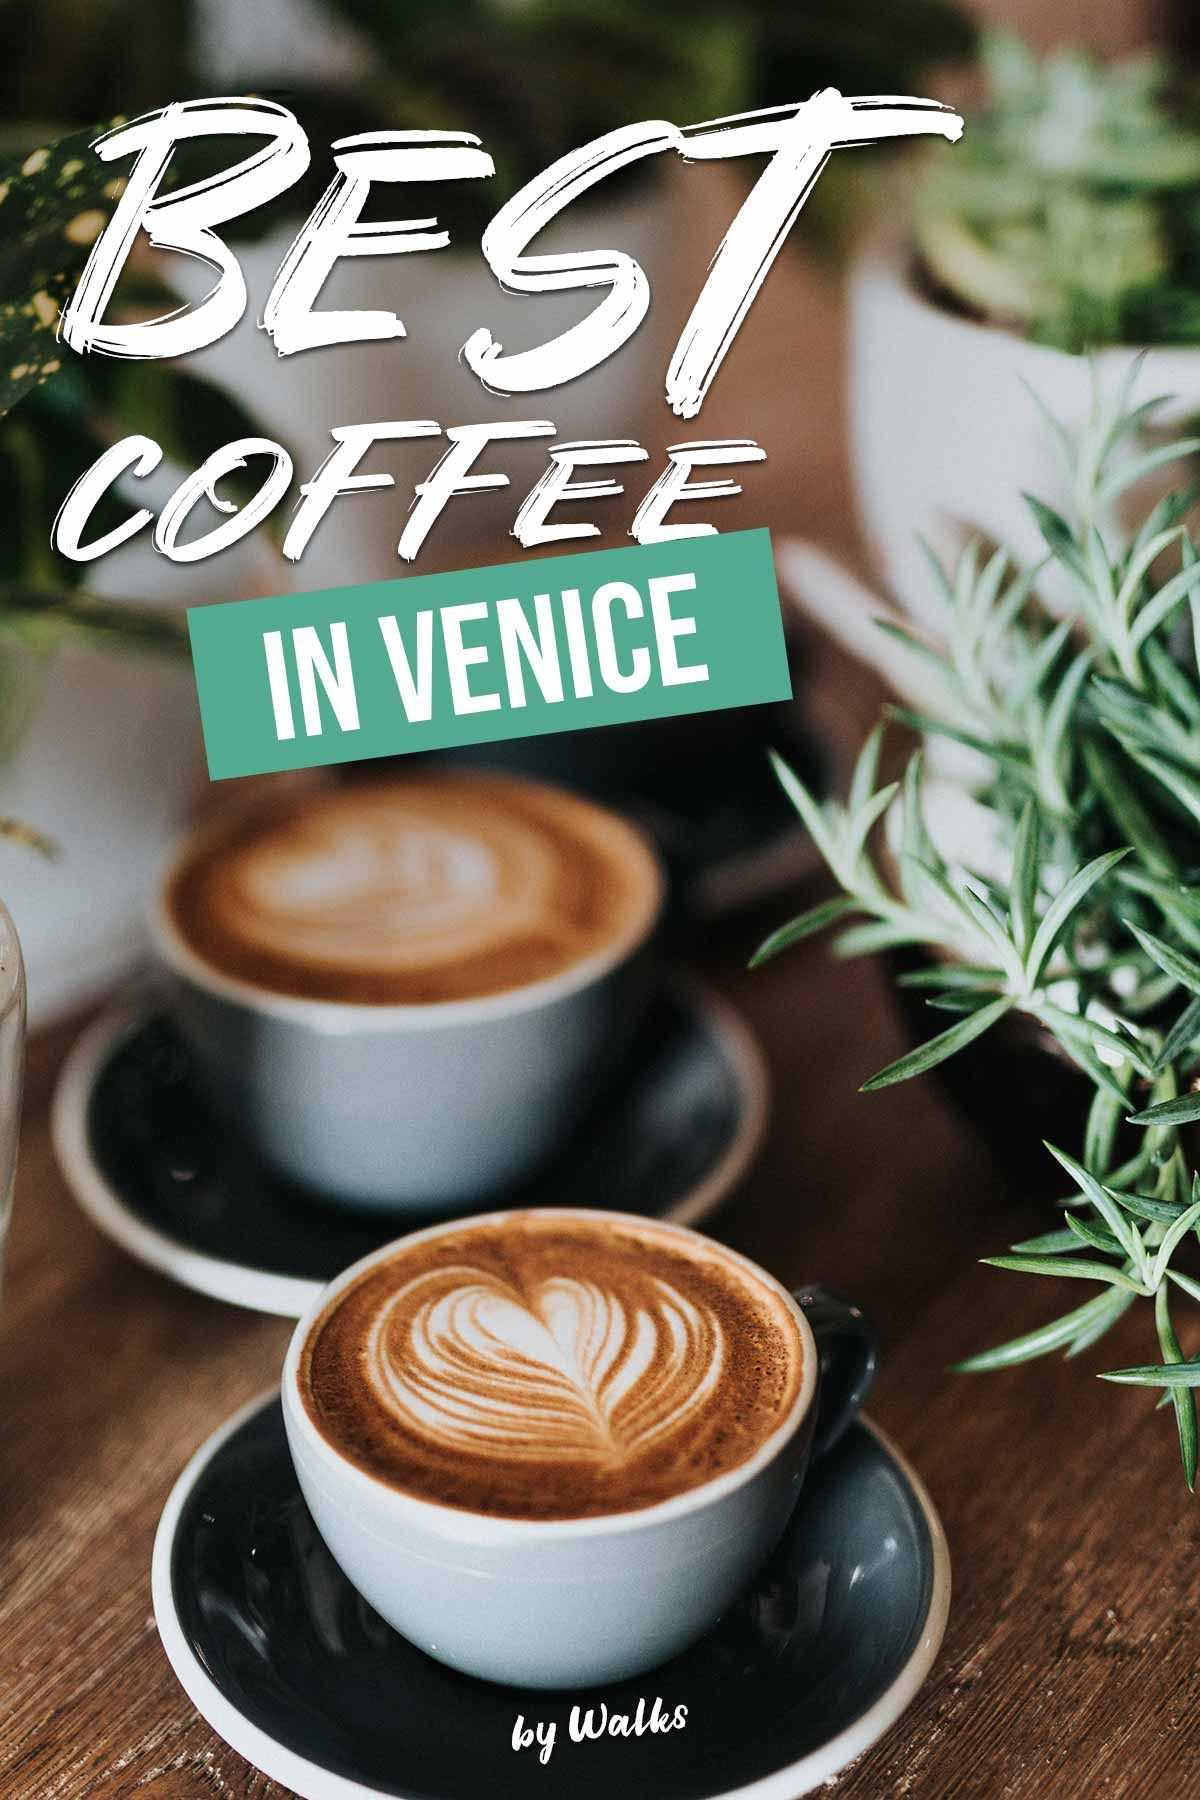 But First Coffee The Ultimate Guide To The Best Cafes In Venice Italy Venice Cafe Cool Cafe Brunch Venice